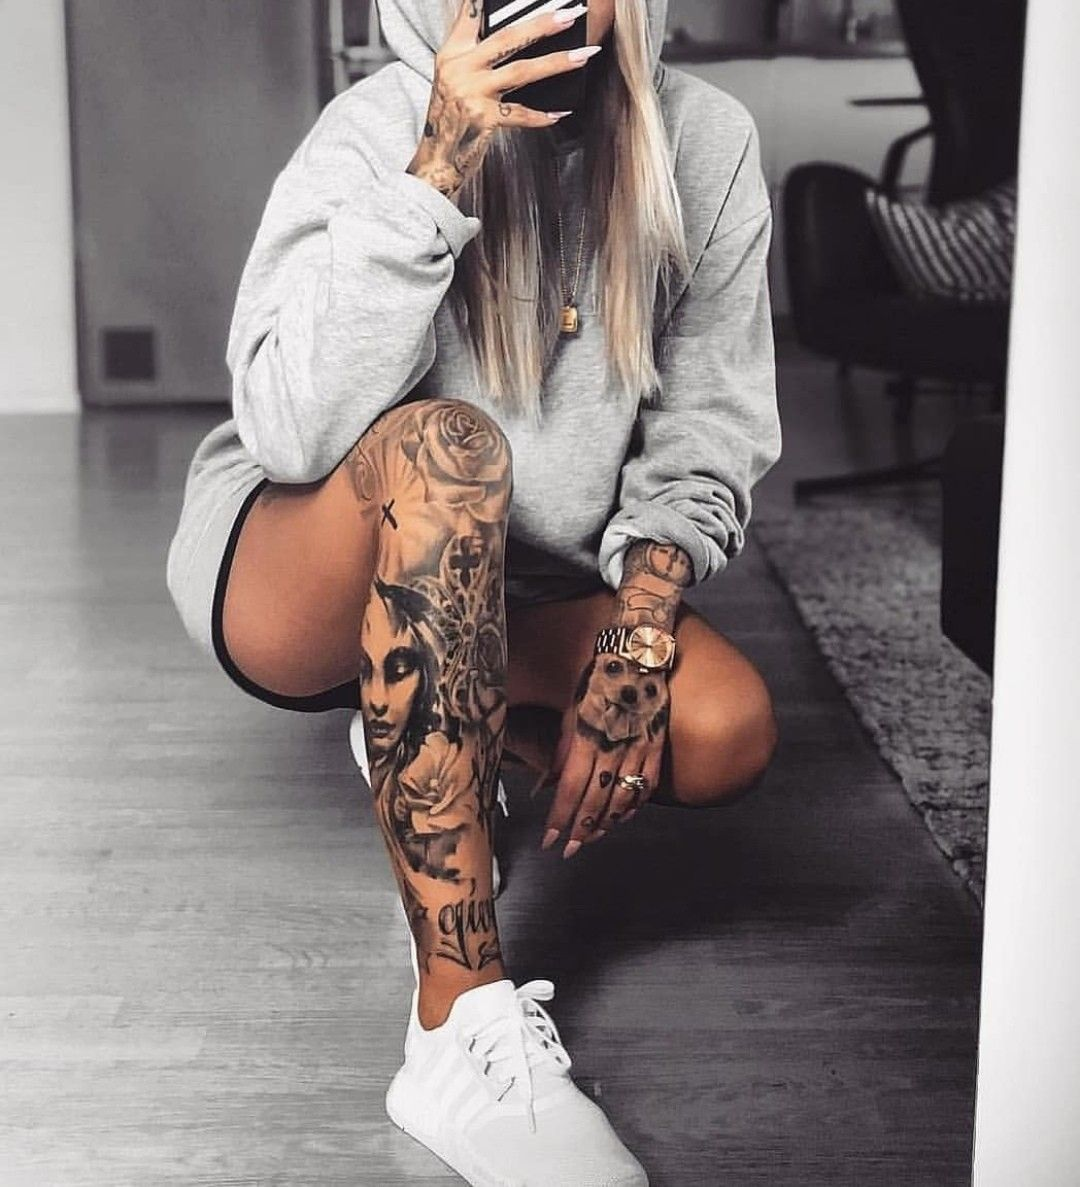 Pin By Relax On Tattoo Tattoos Leg Tattoos Sleeve Tattoos